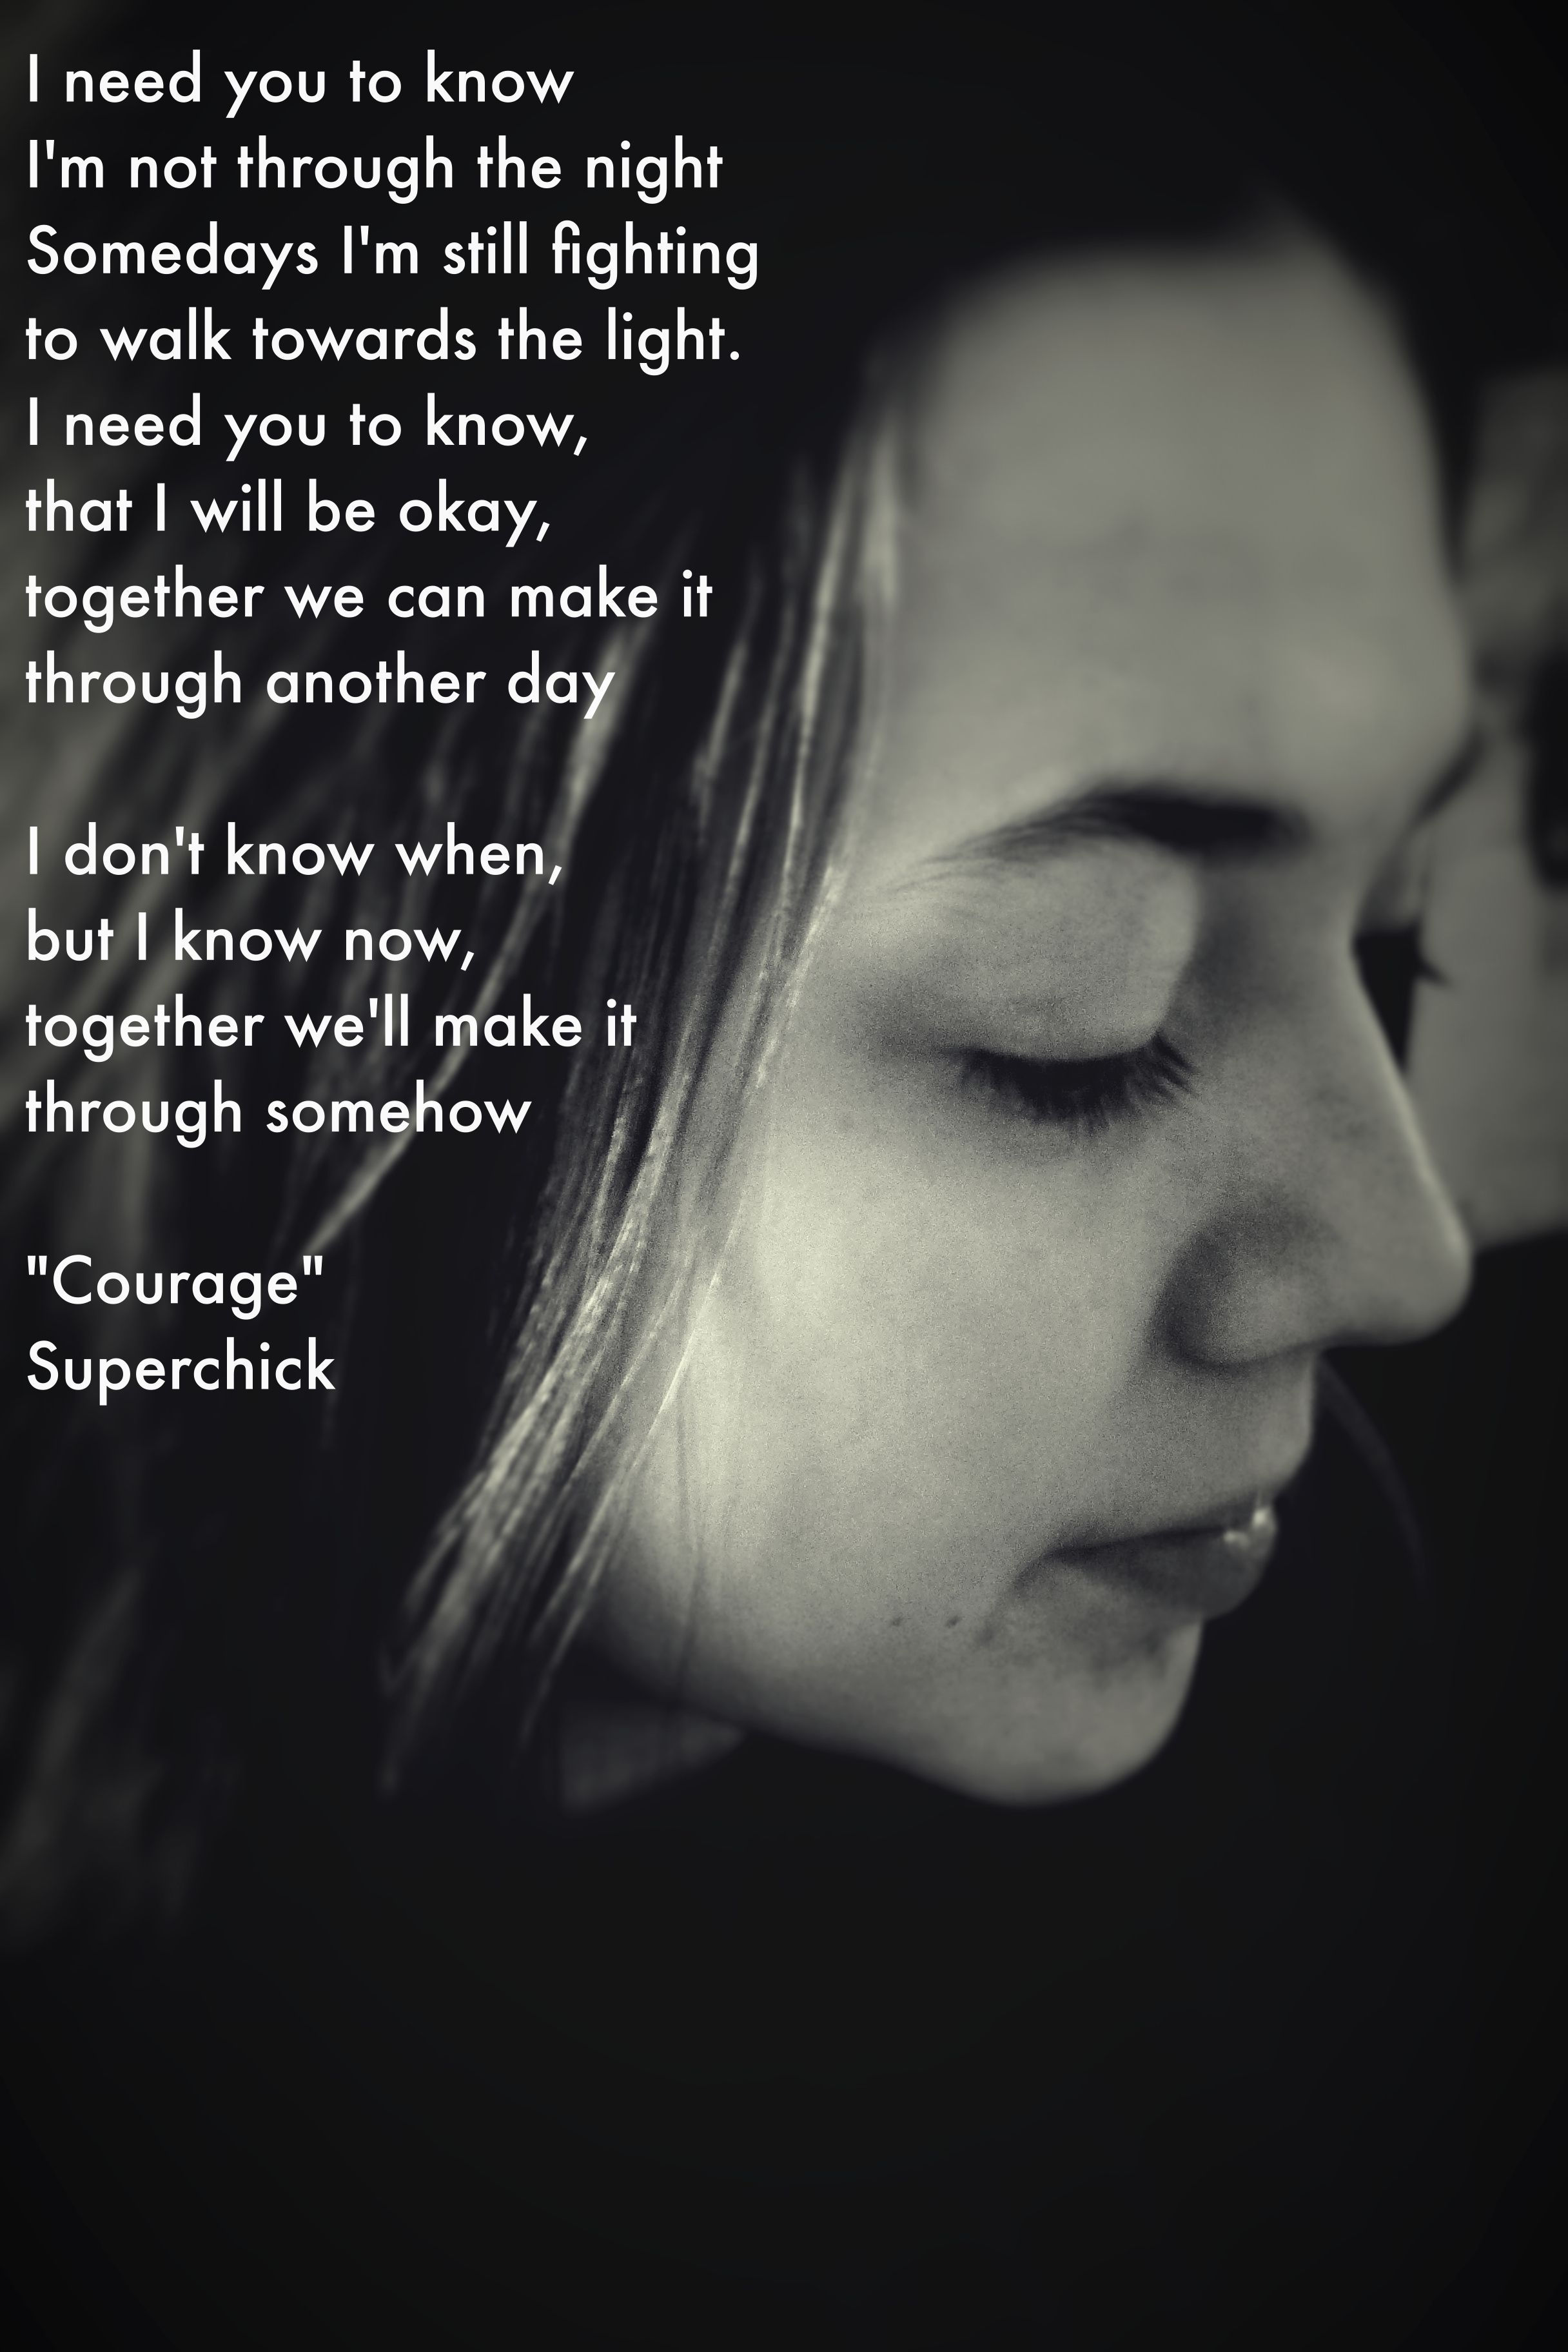 courage superchick